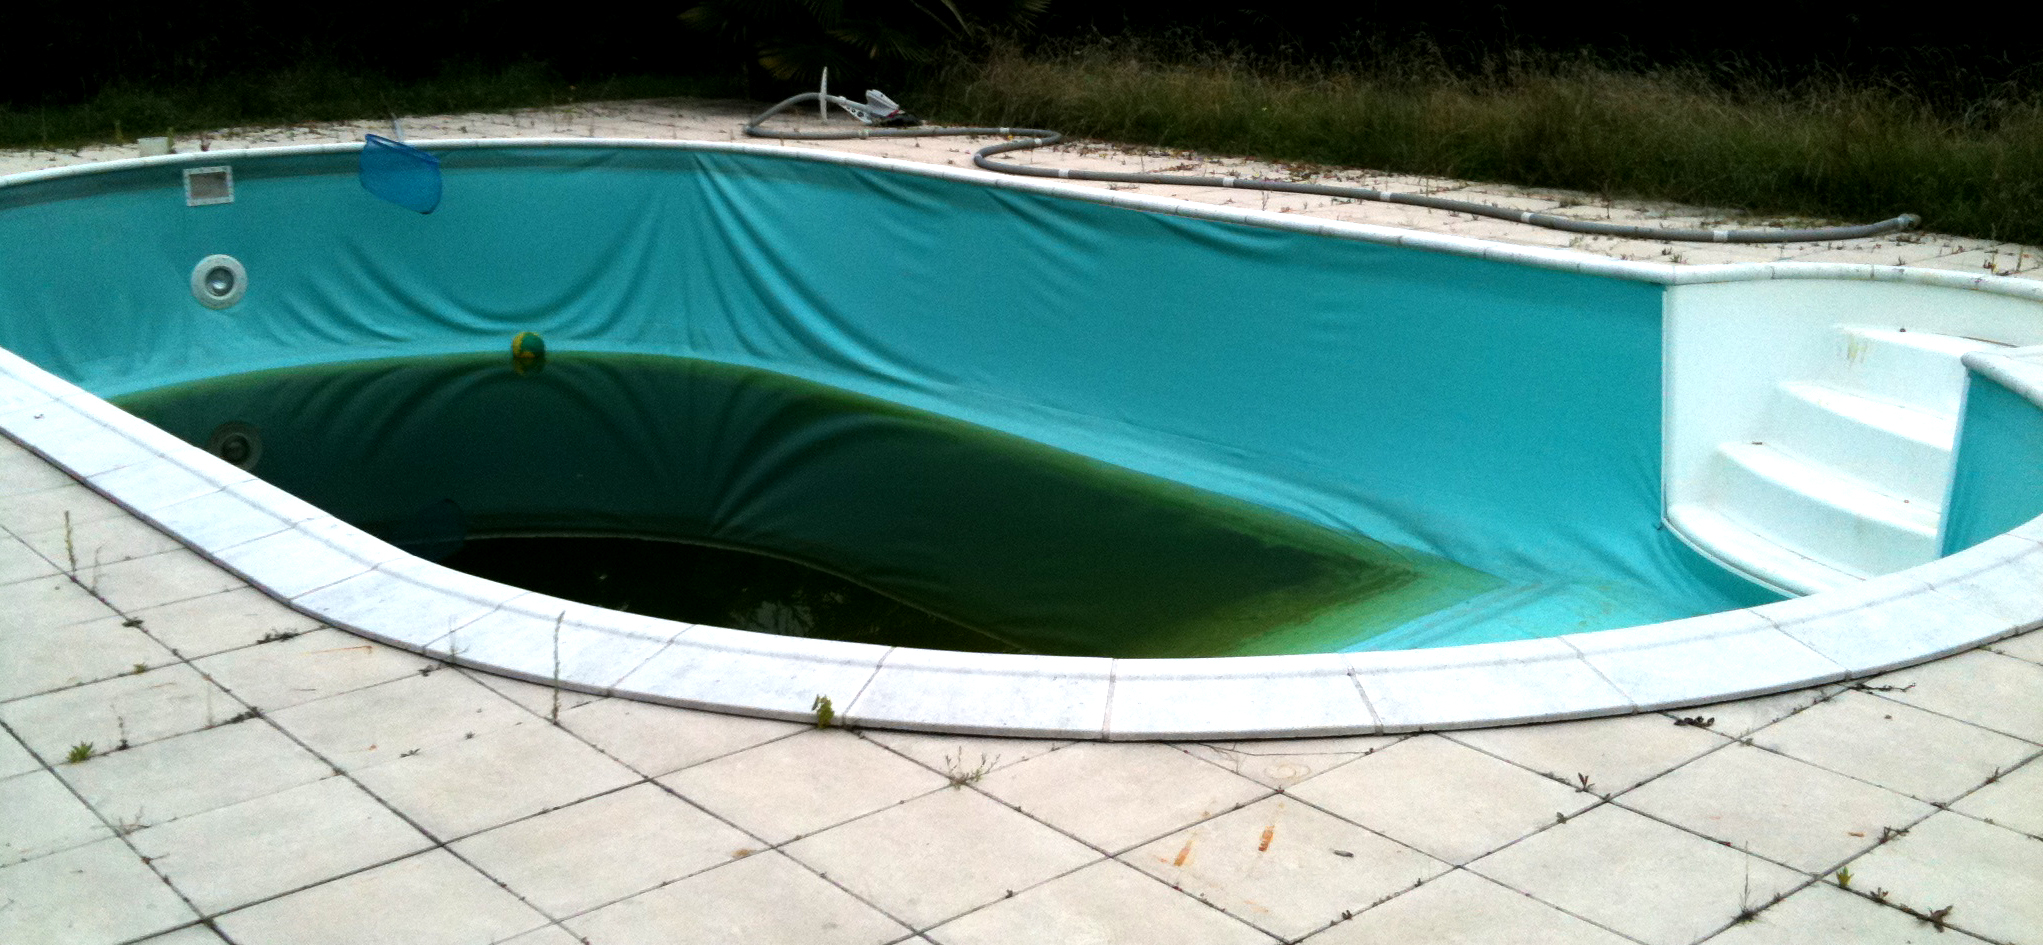 R novation d une piscine waterair - Montage d une piscine waterair ...